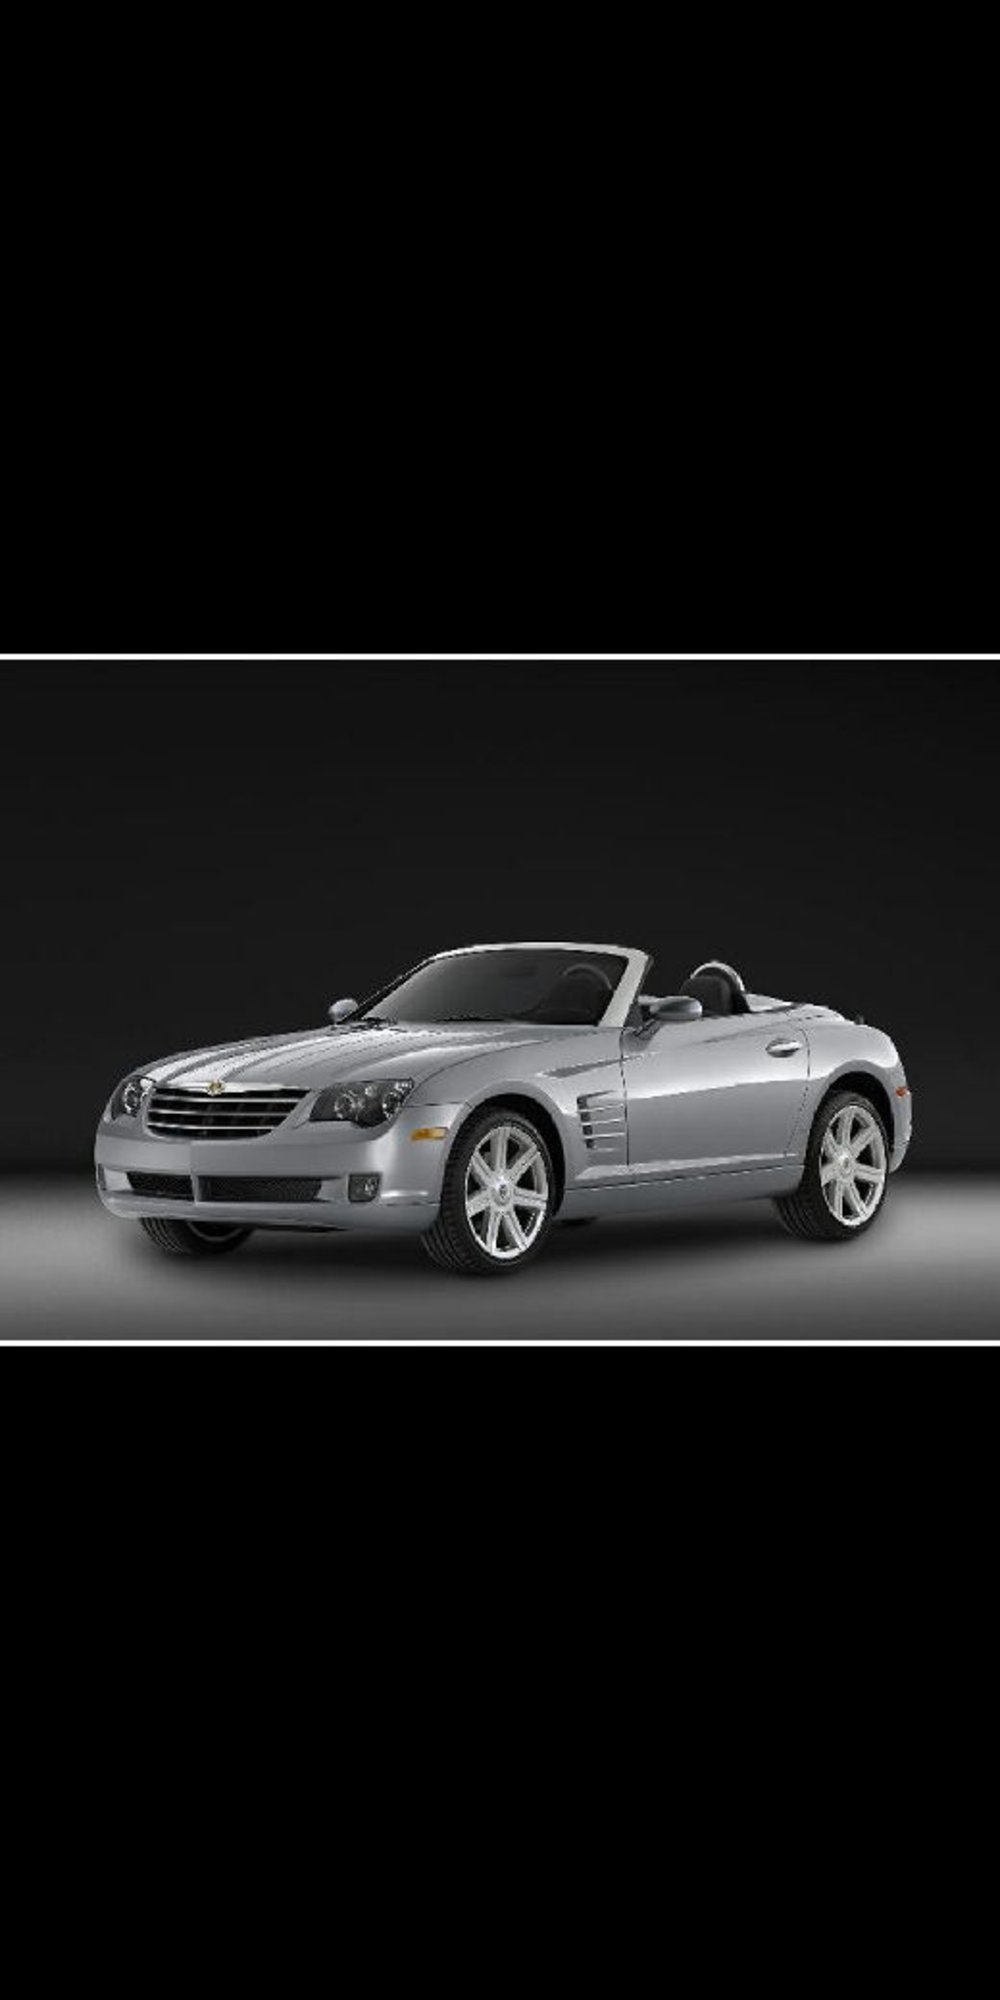 chrysler crossfire 3.2 v6 roadster #4